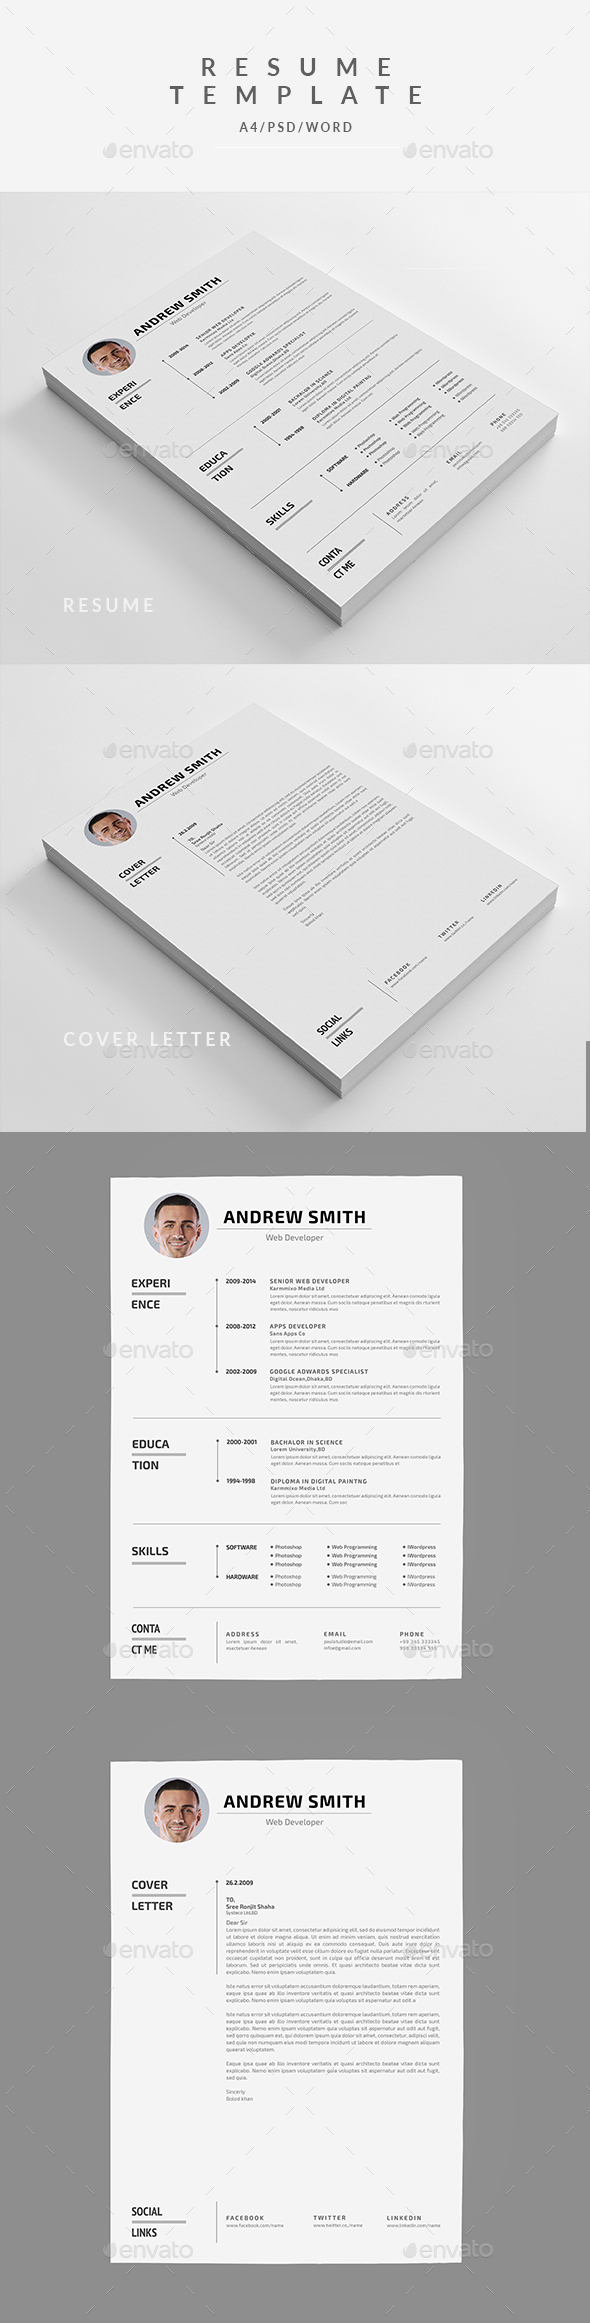 Microsoft Word Resume | Resume Cover Letter Template Psd Ms Word Resume Cv